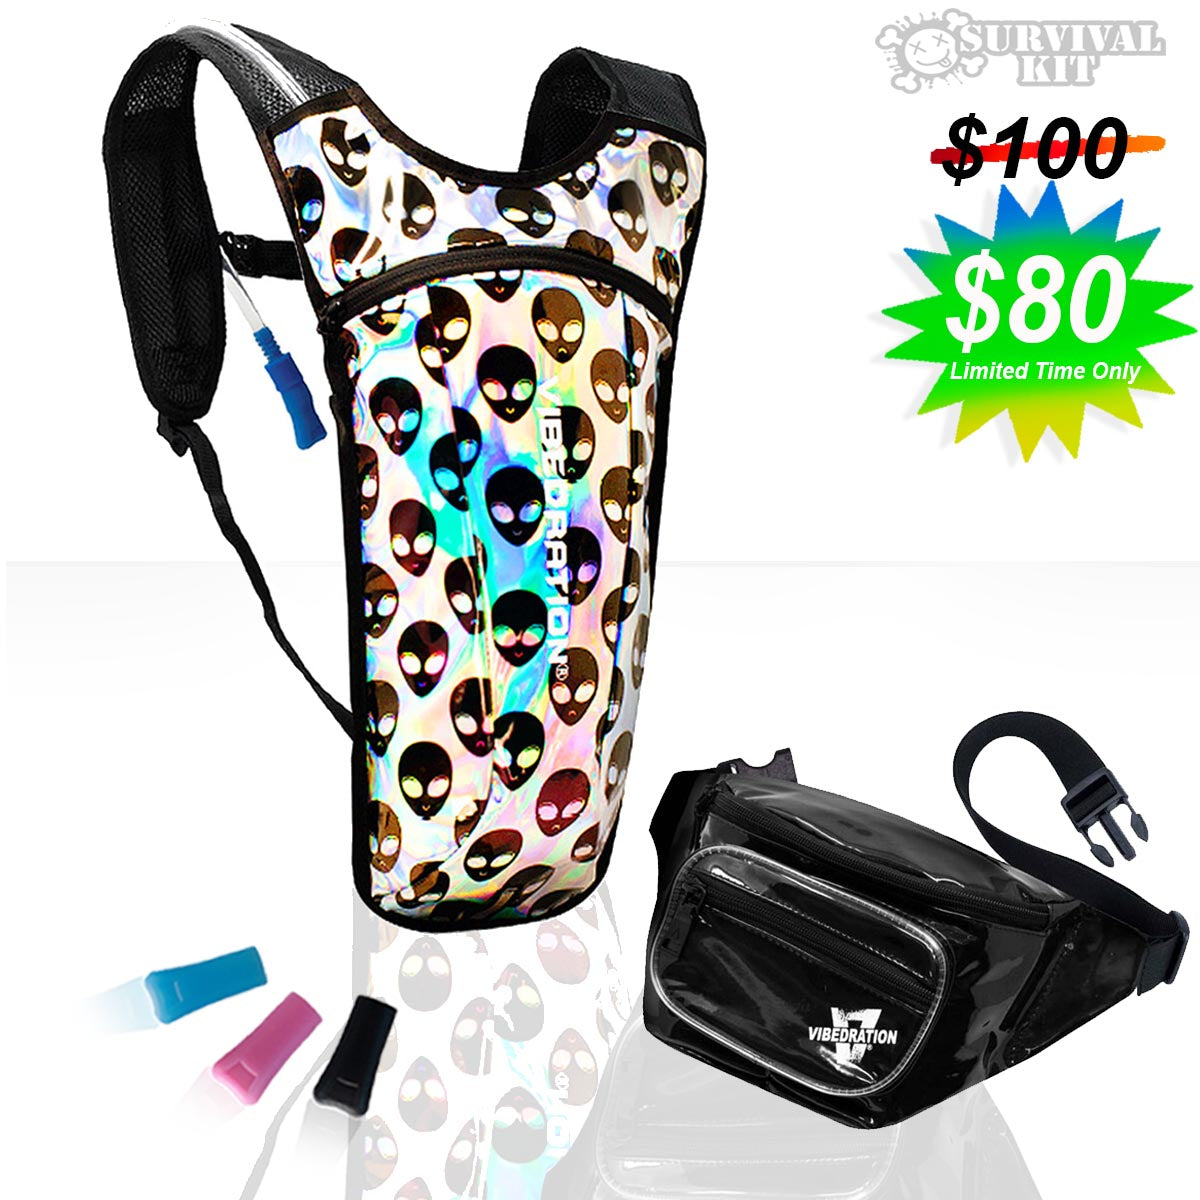 Holographic Alienz Water Pack and Black Fanny Pack Festival Kit